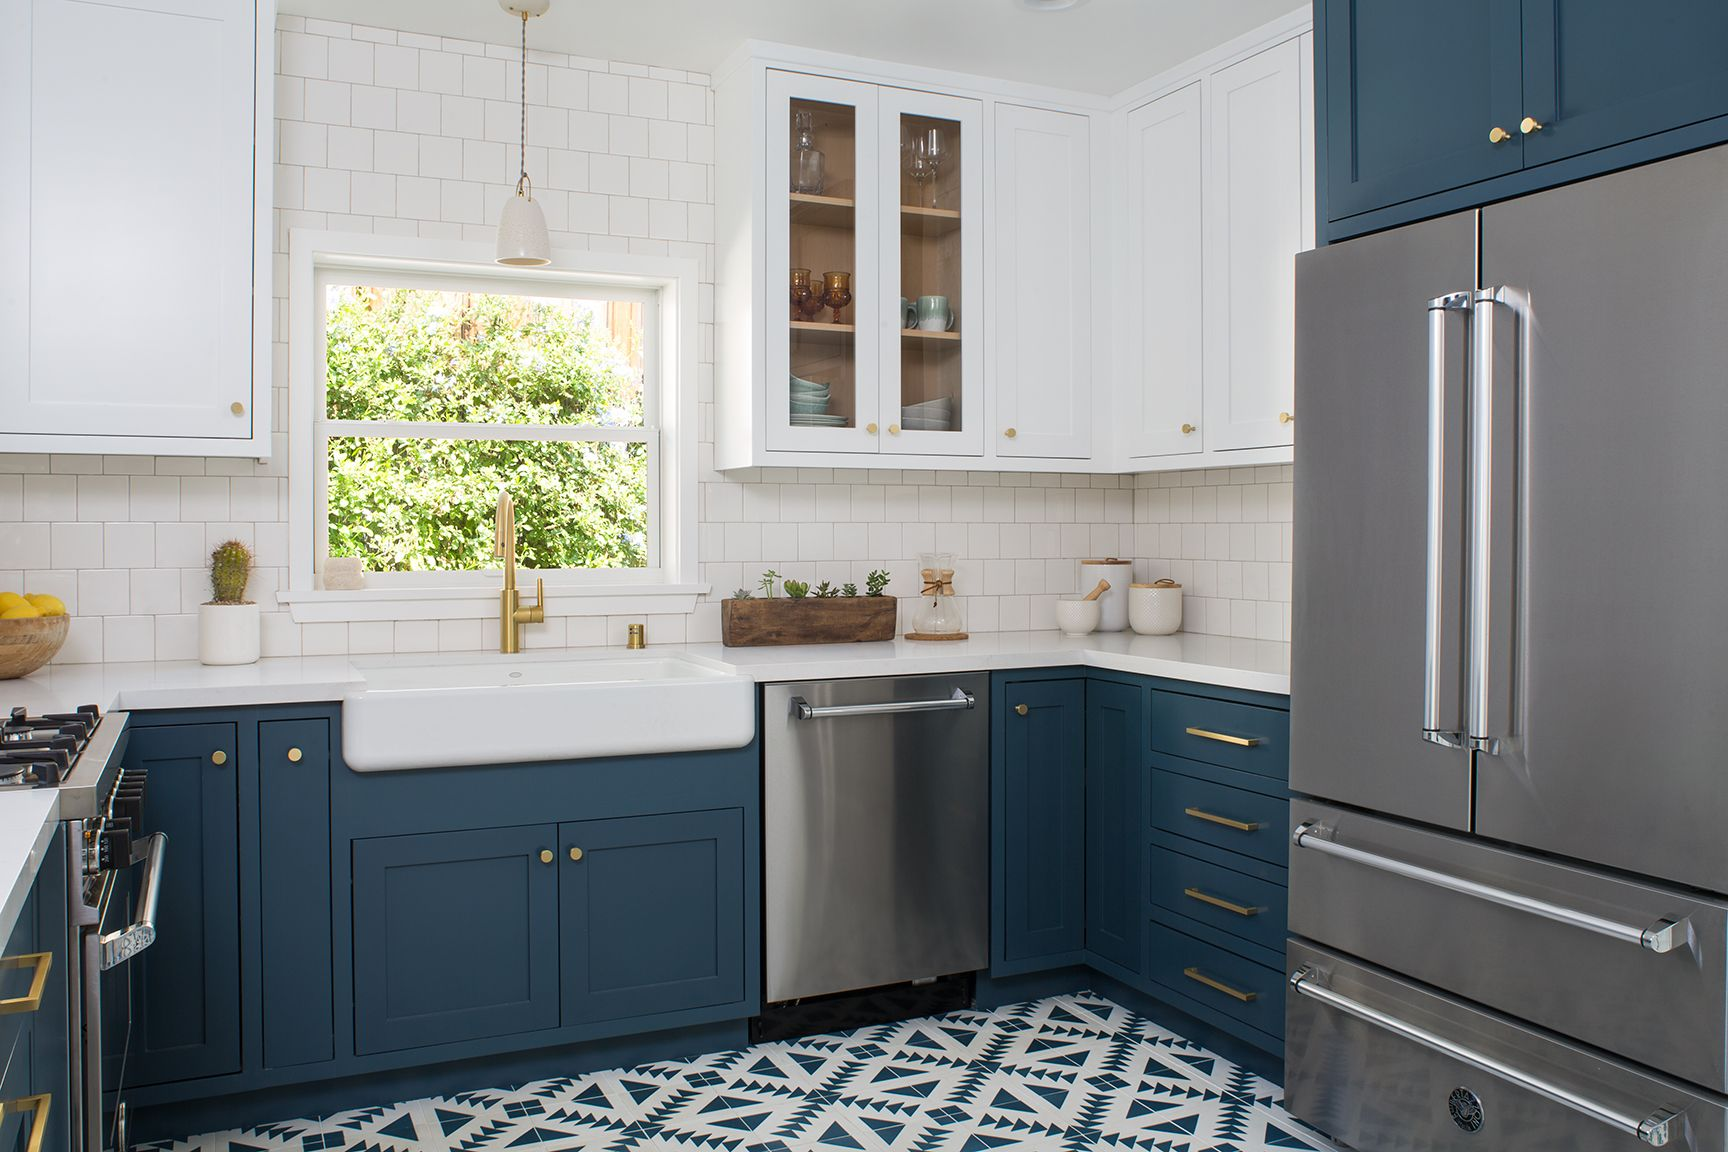 6 Hardware Styles To Pair With Deep Blue Shaker Cabinets On Houzz Kitchen Remodel Blue White Shak In 2020 Blue Kitchen Cabinets Hague Blue Kitchen Upper Cabinets